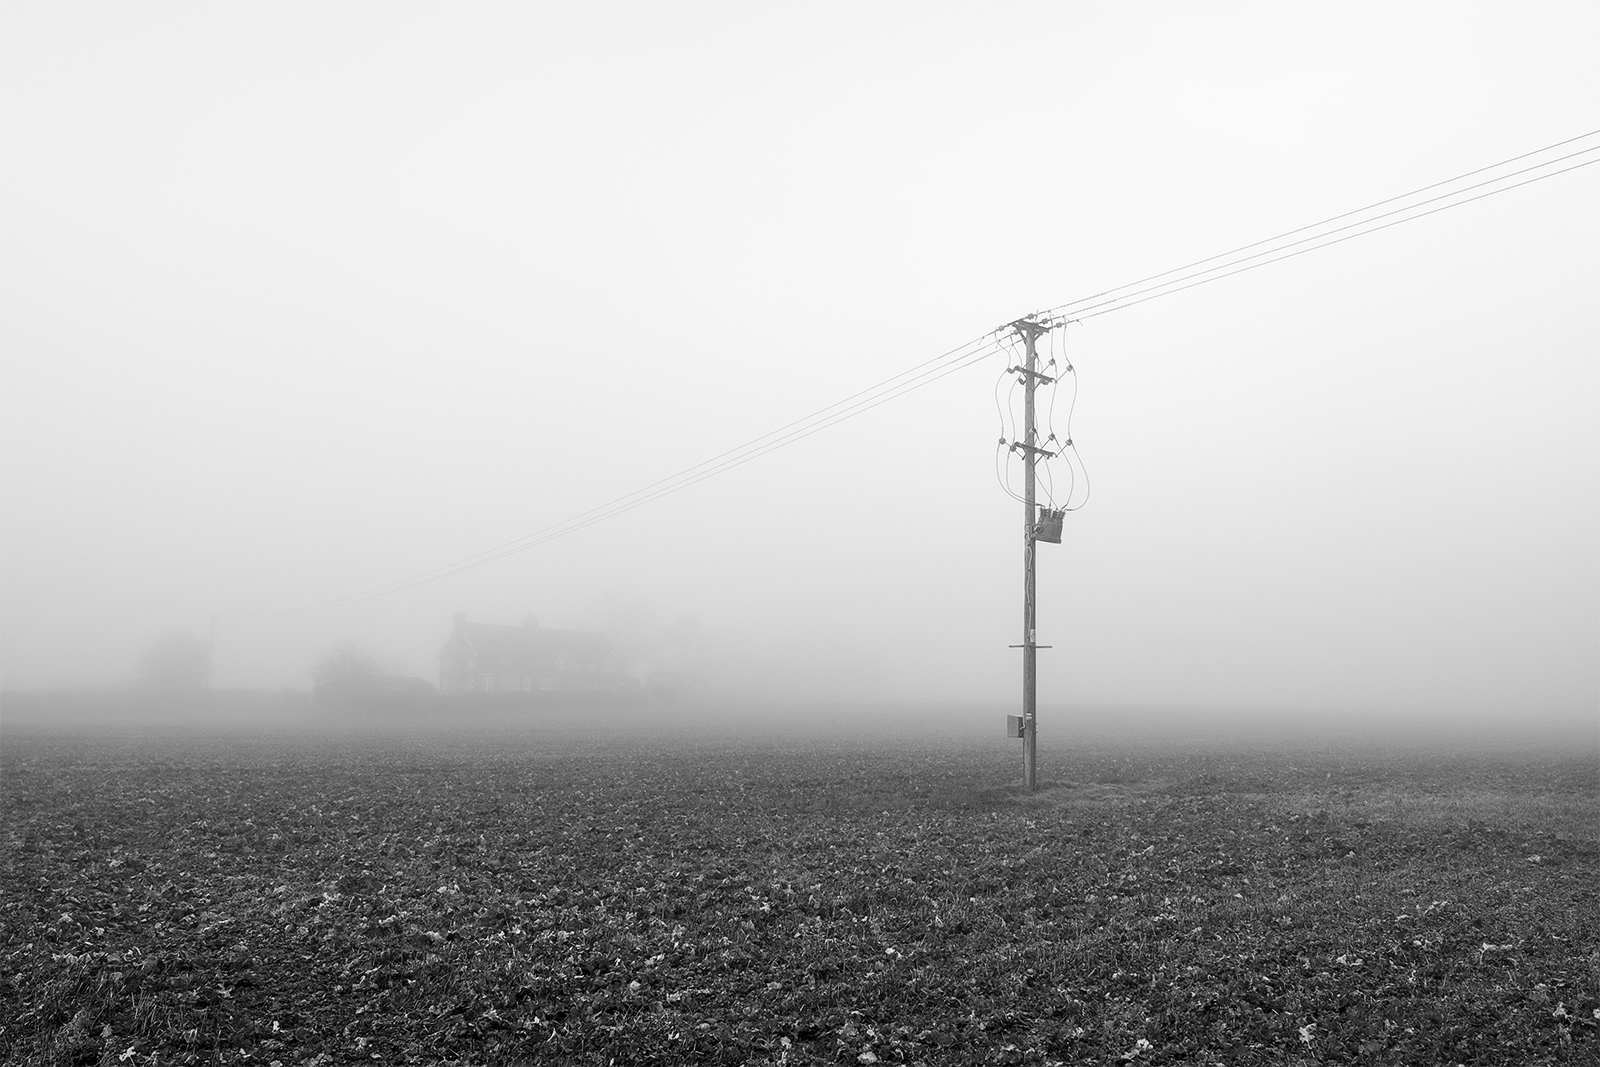 Telegraph pole power lines in field surrounded by fog with house in distance, Stratfield Mortimer Berkshire UK black and white landscape composition nature rural countryside documentary photograph ©P. Maton 2018 eyeteeth.net